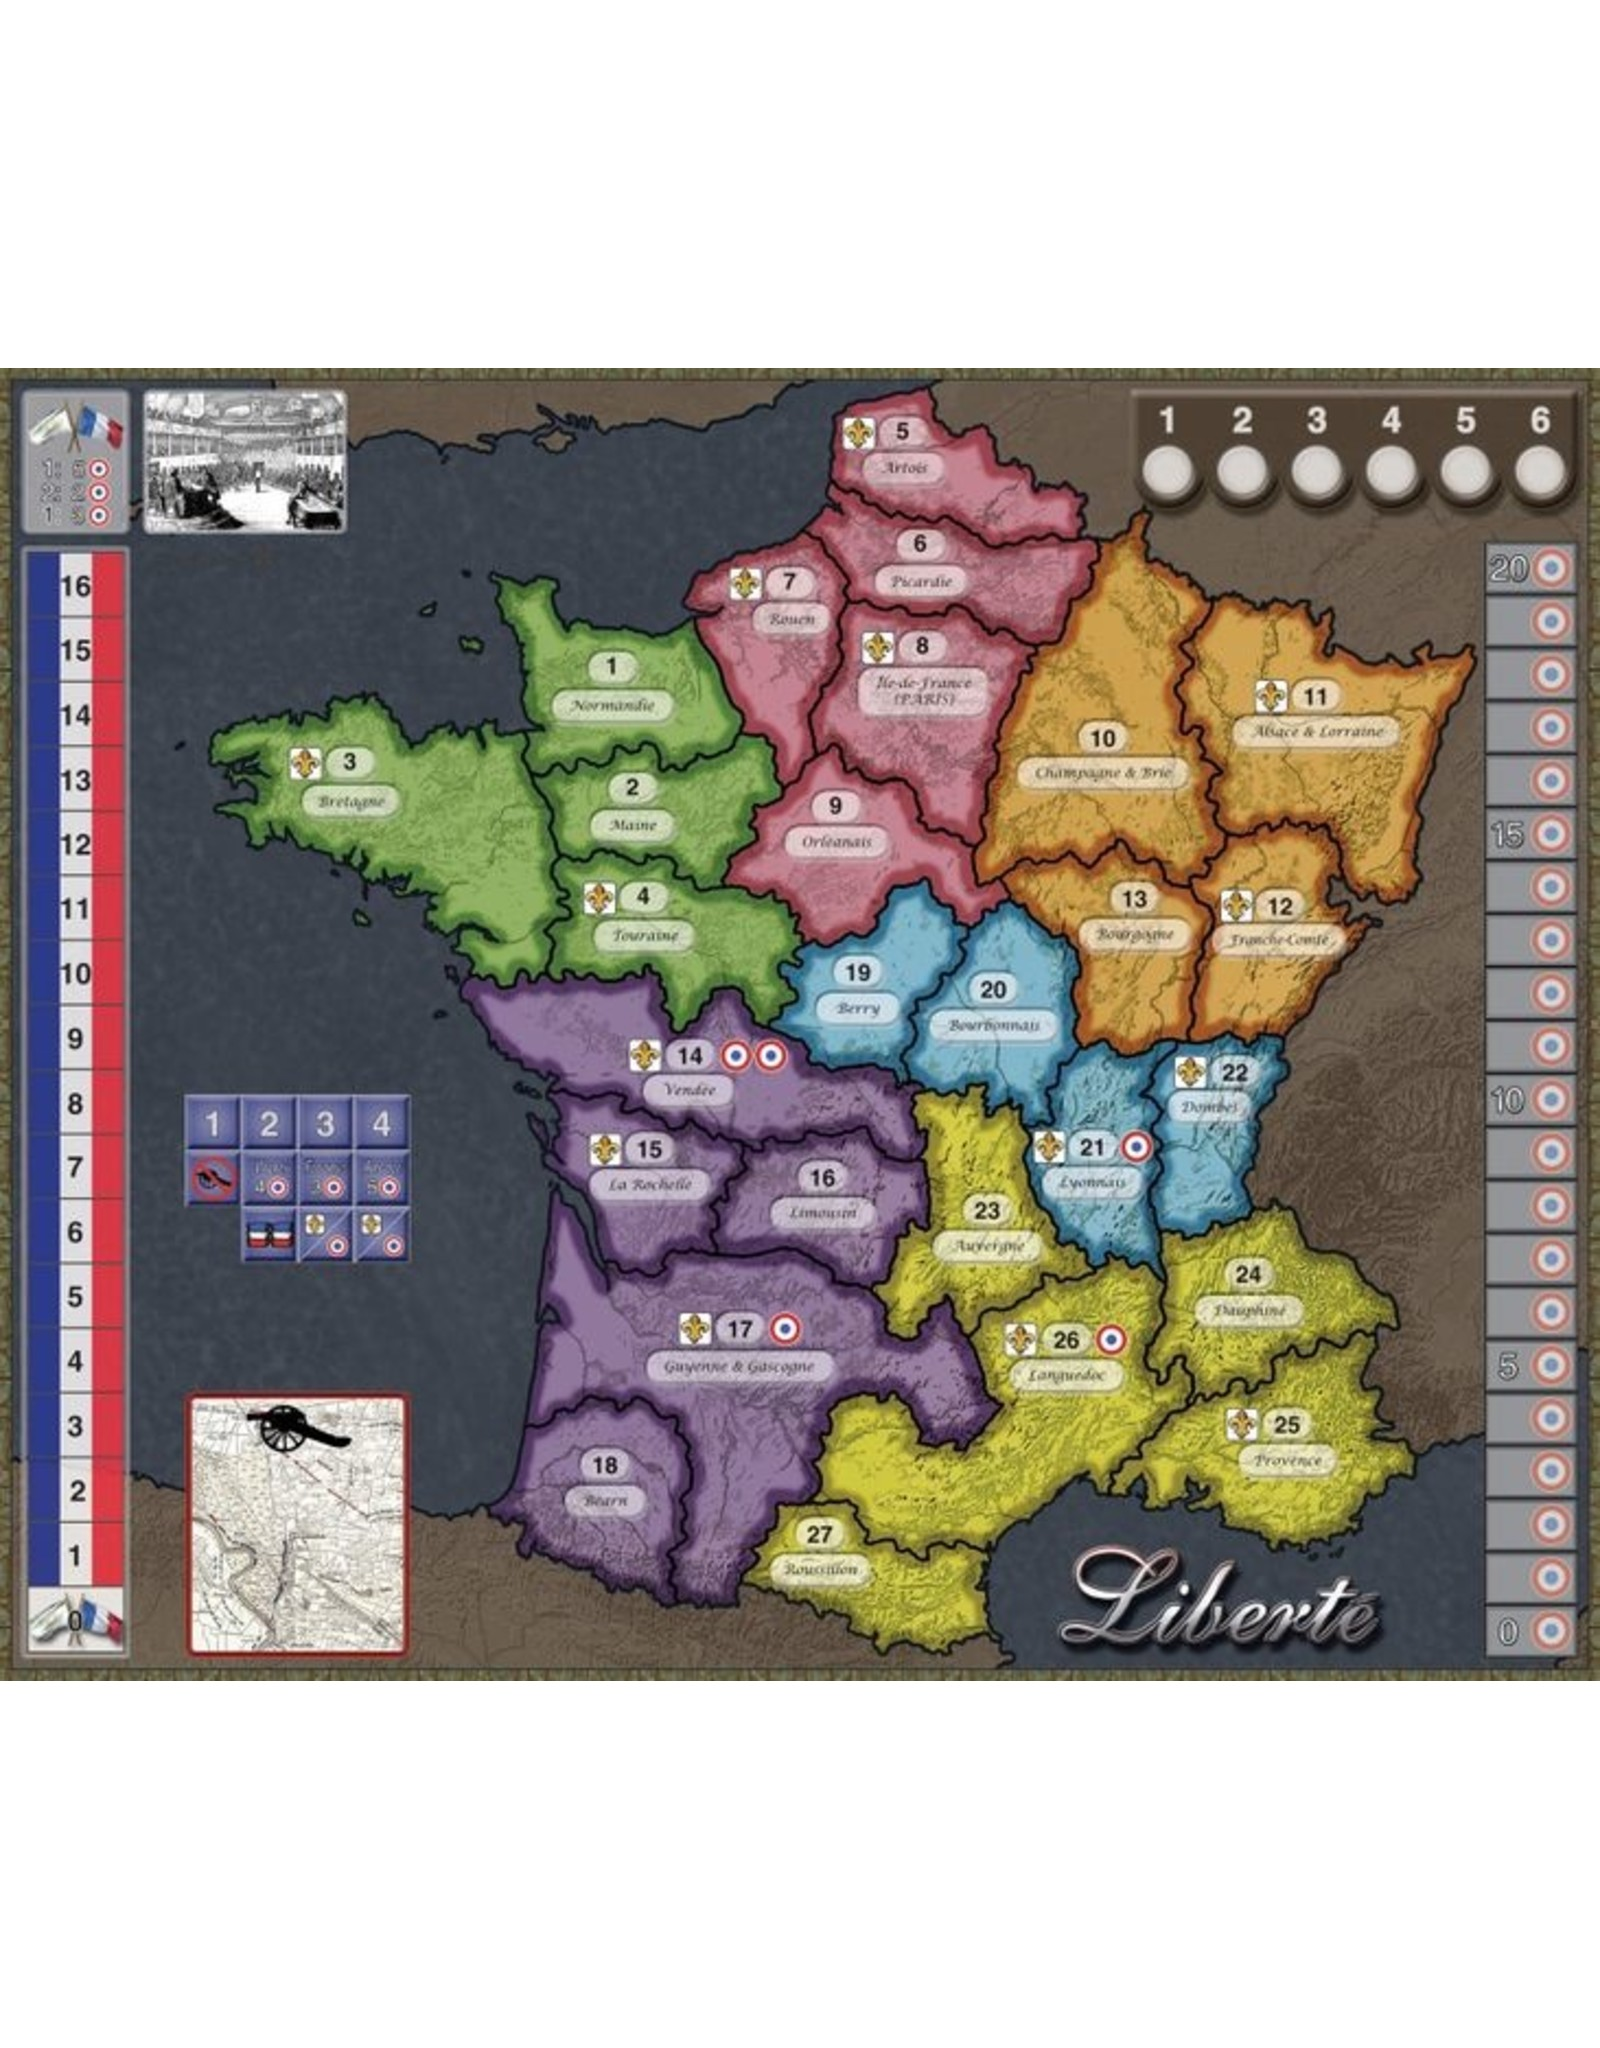 Valley Games, Inc. Liberté